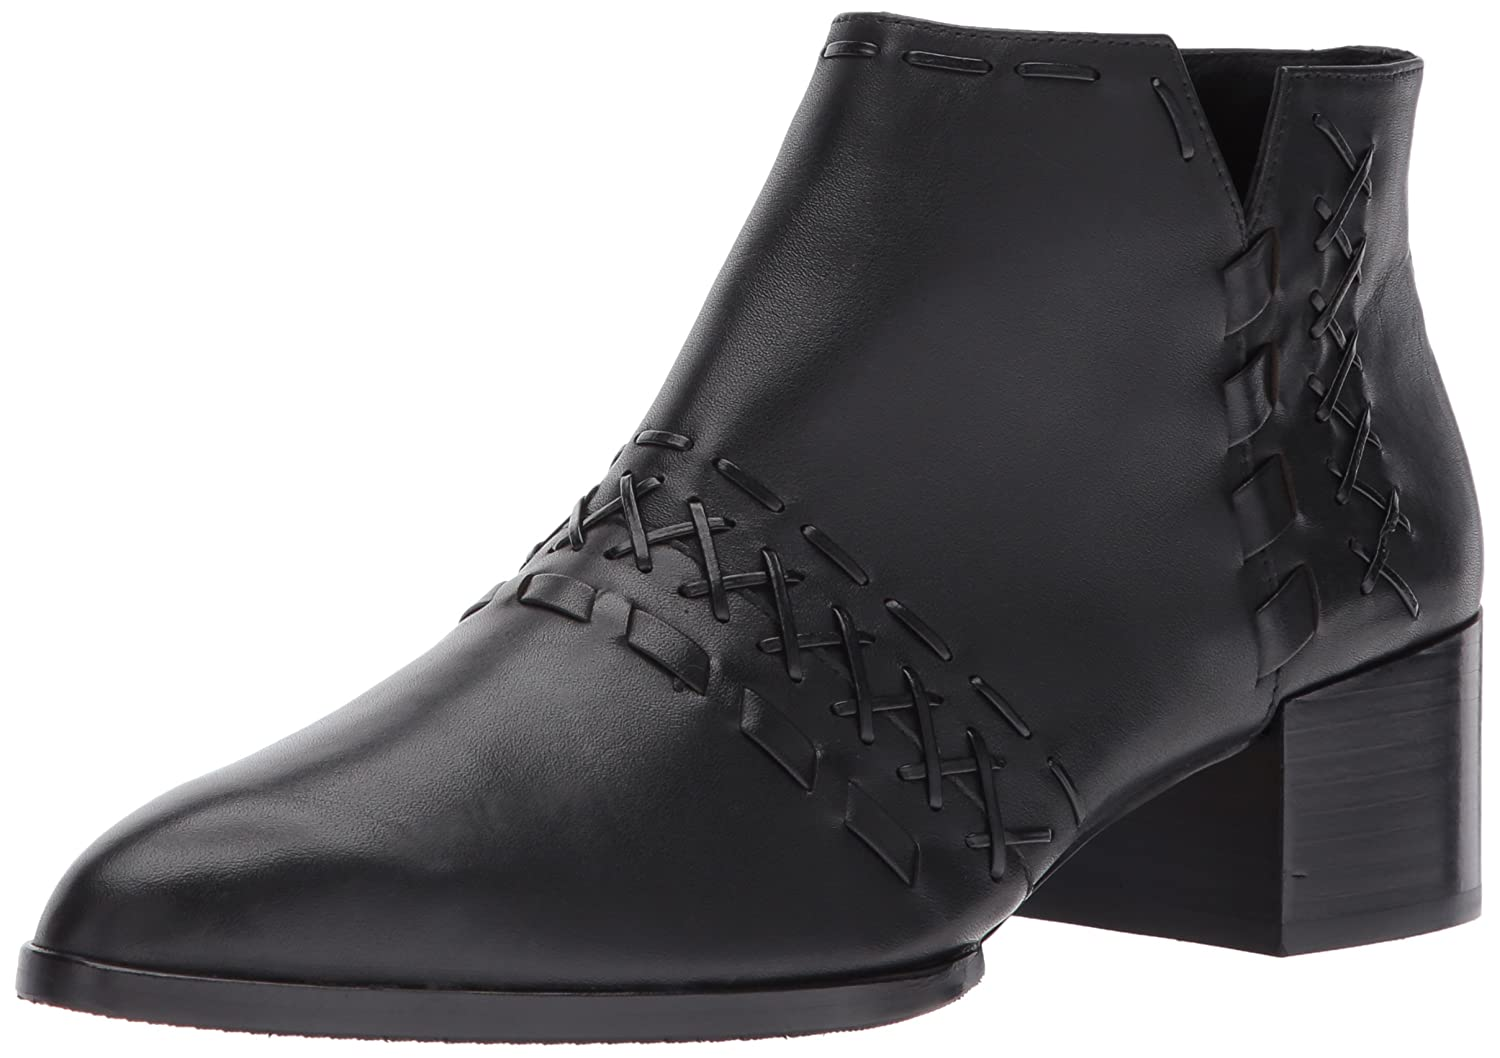 Donald J Pliner Women's Bowery Ankle Boot B01N30QWPI 8.5 B(M) US|Black